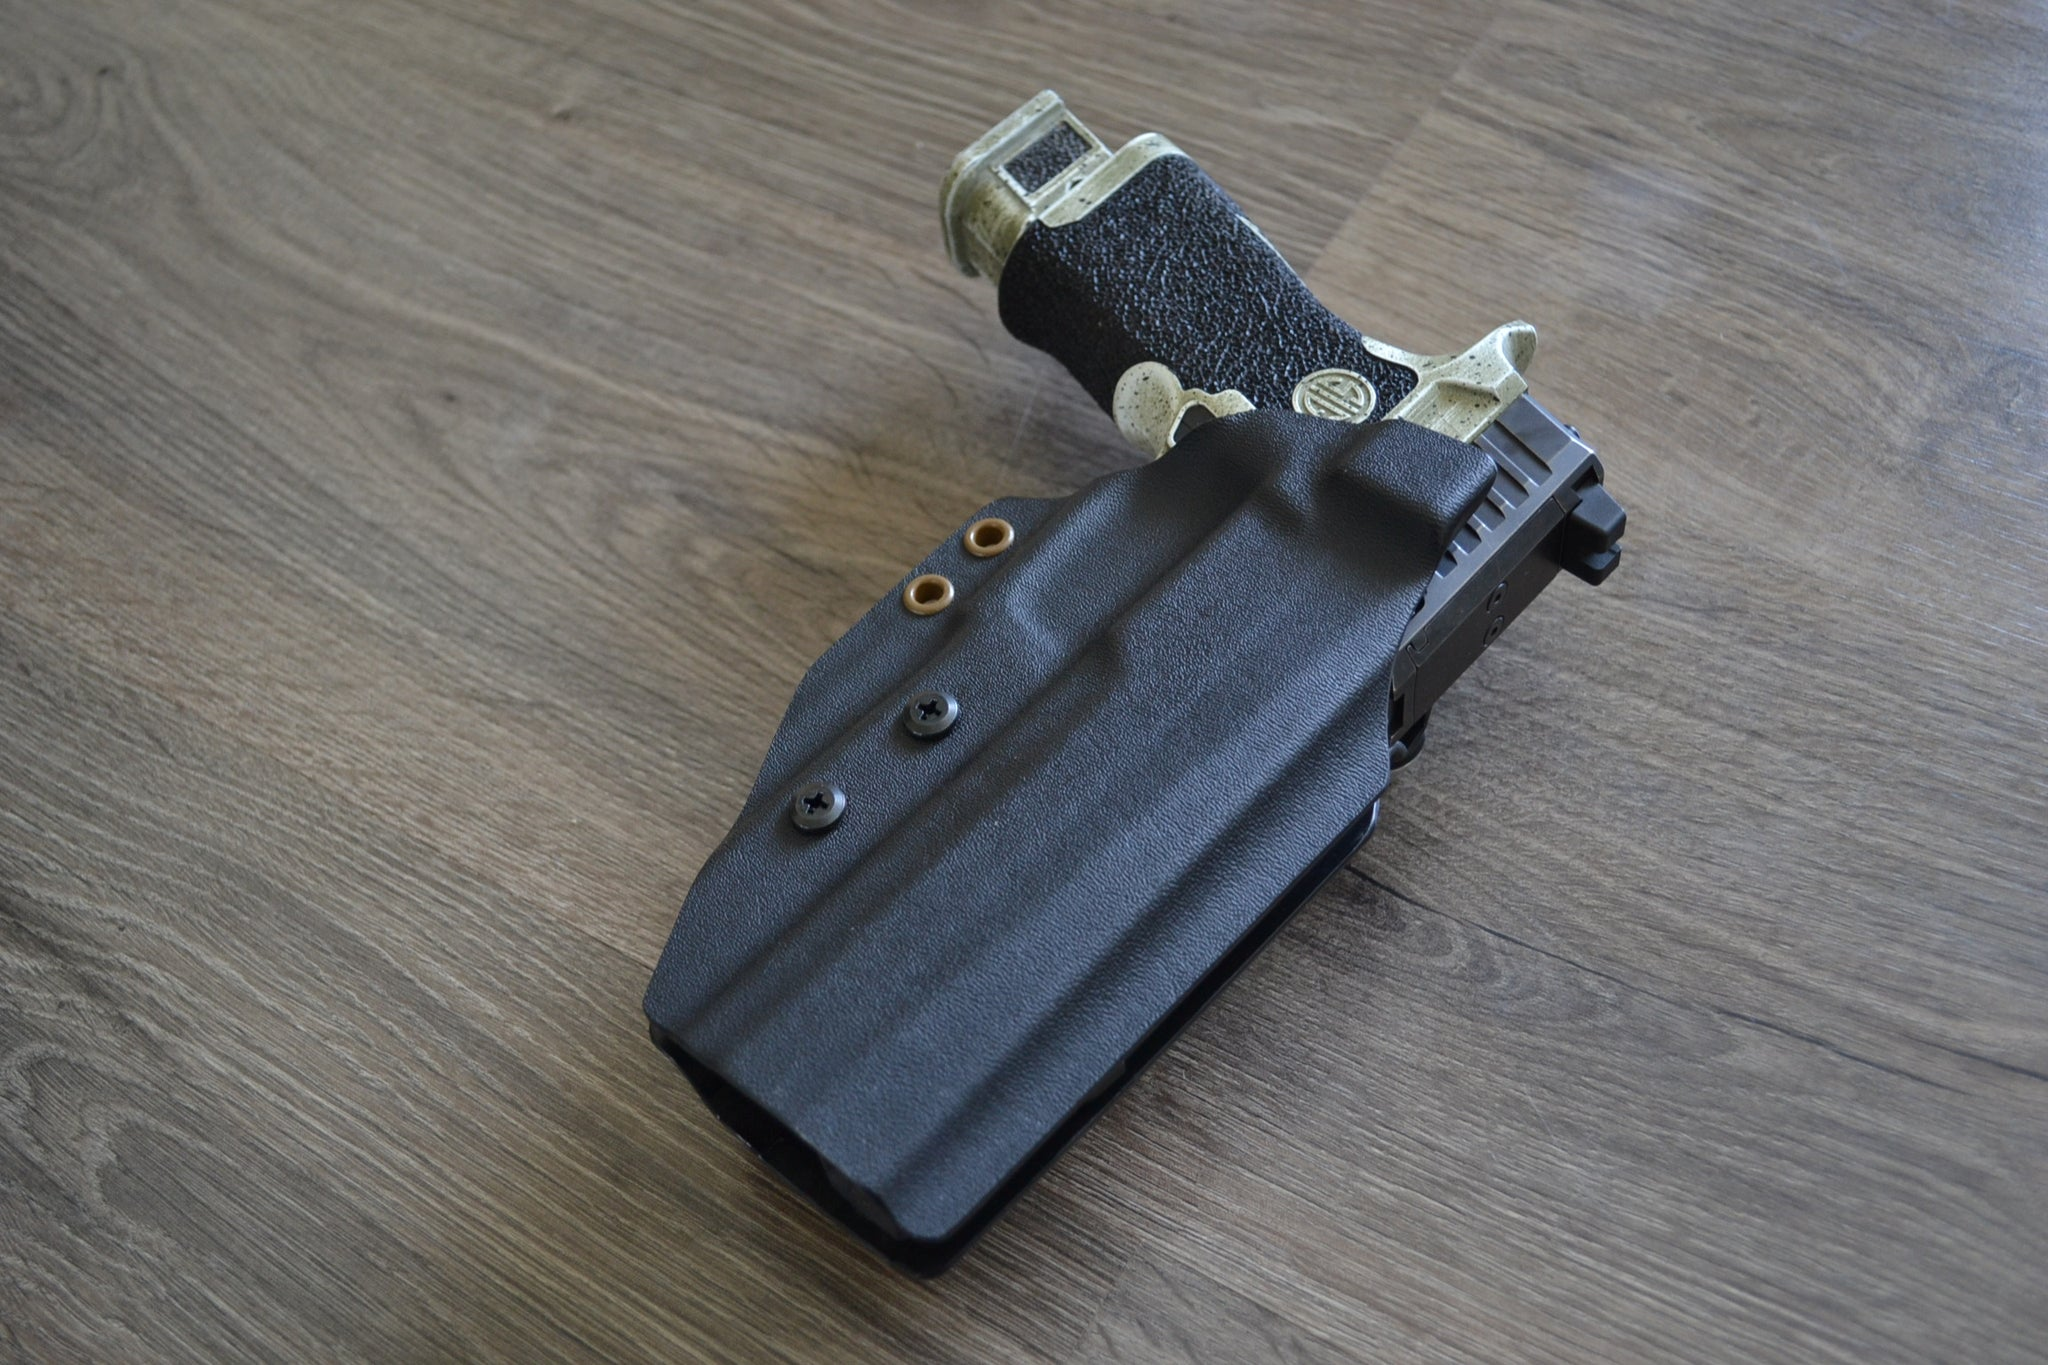 V3 Competition/Range OWB Holster